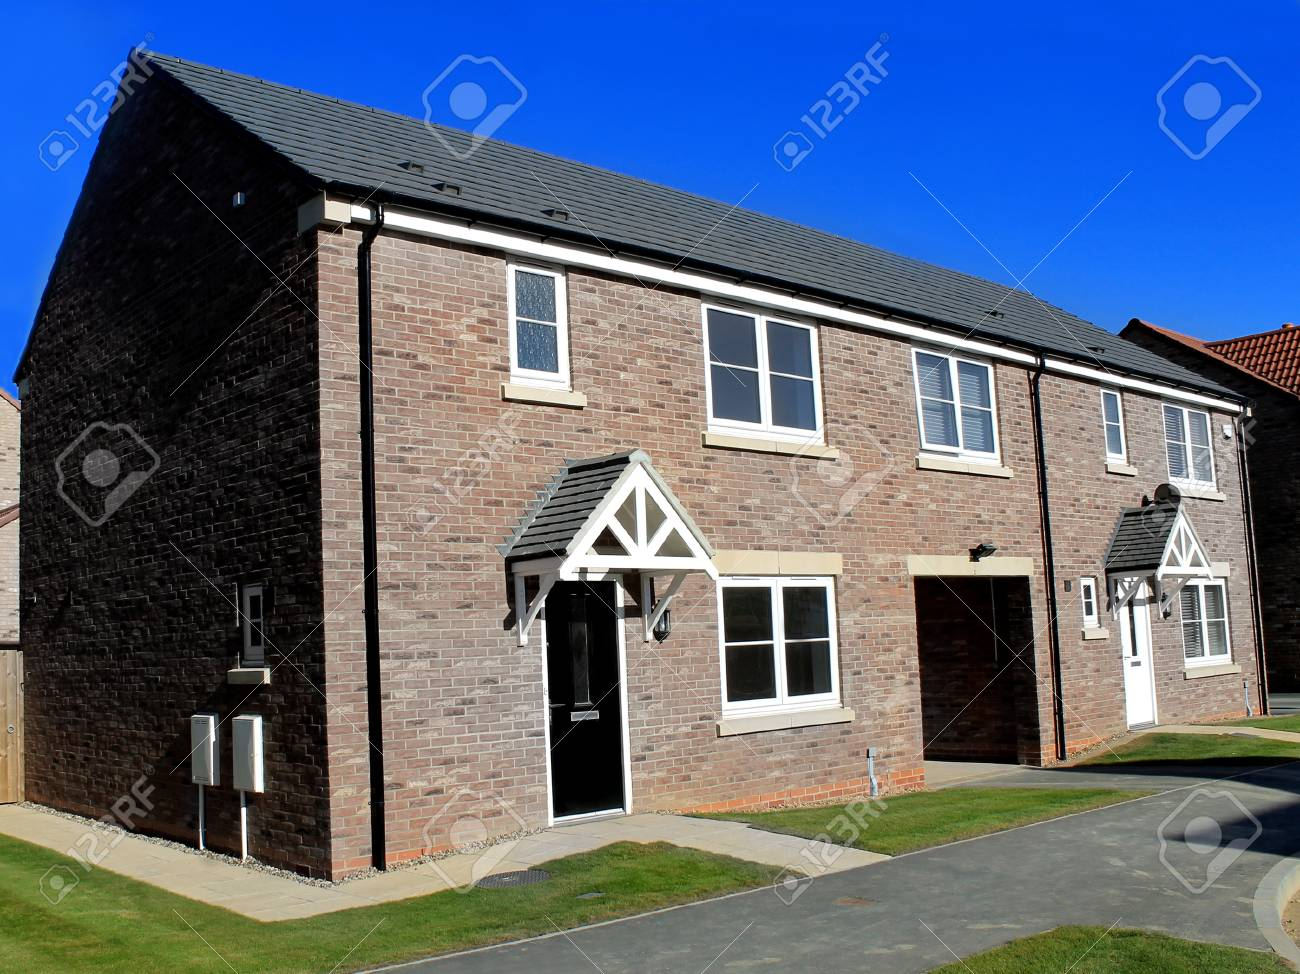 New unoccupied modern houses on a housing estate in eastfield scarborough england stock